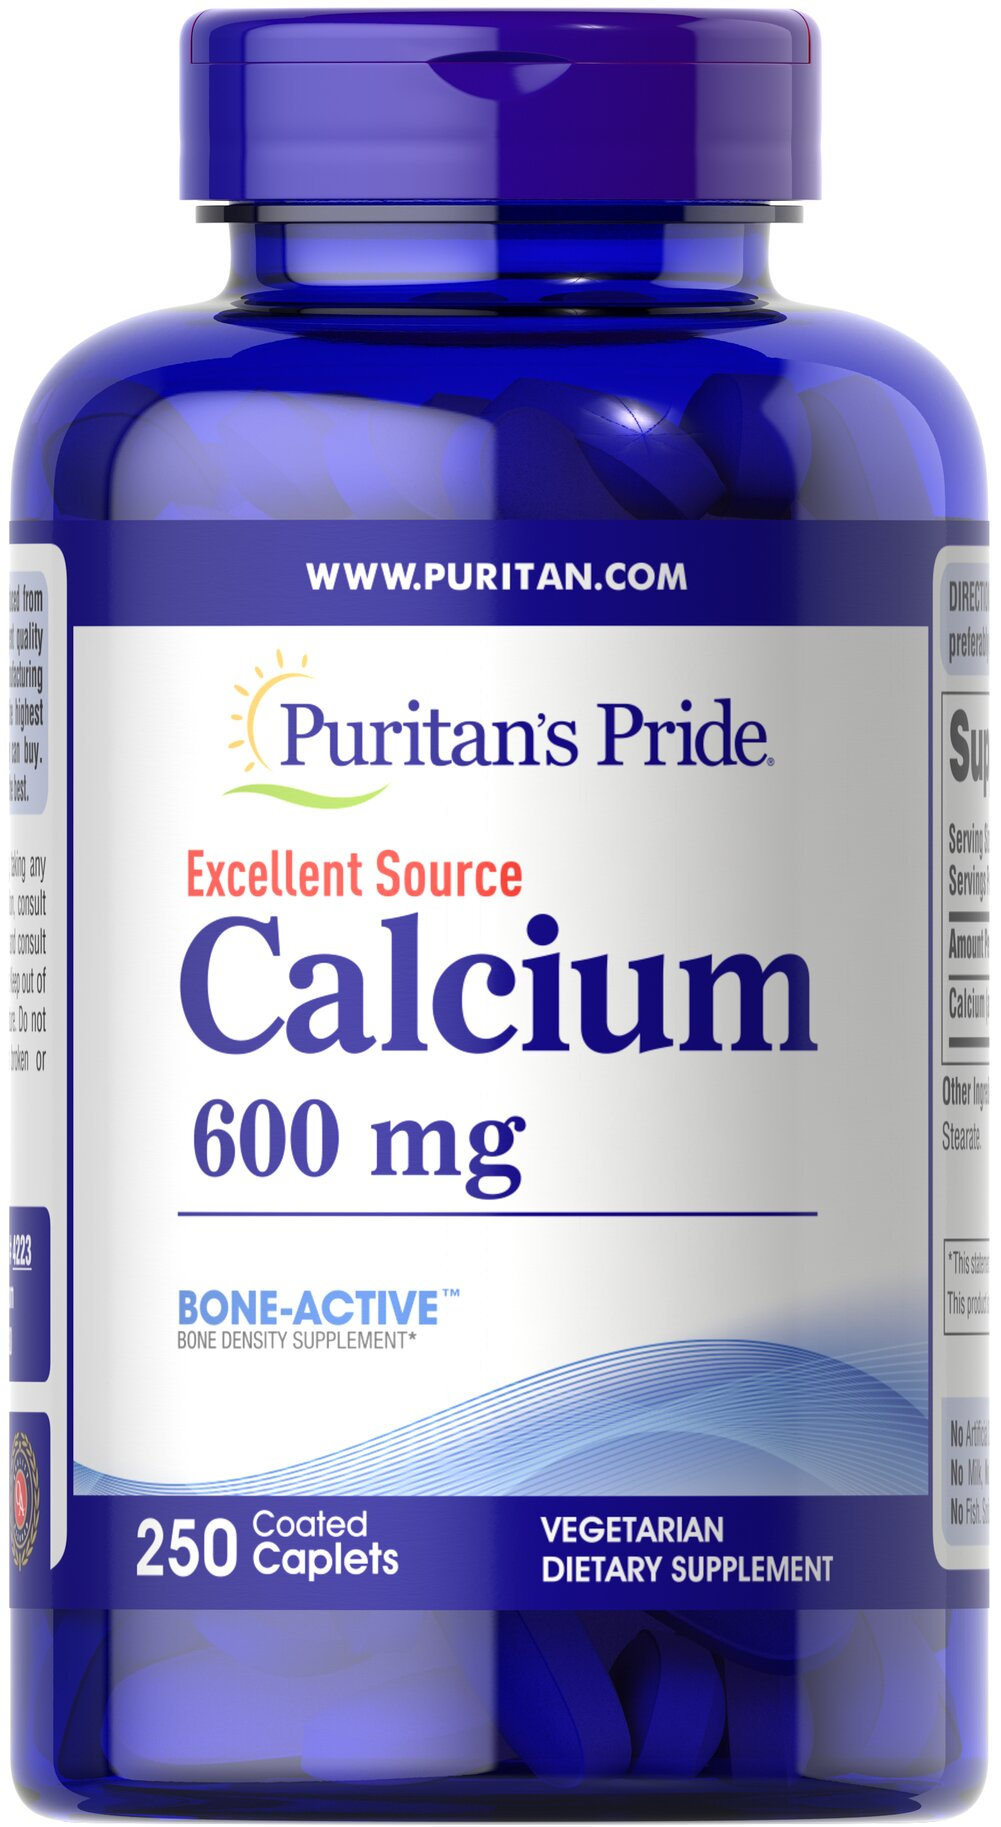 Calcium Carbonate 600 mg <p>Supports Bone Health**</p><p>Many factors contribute to the development of osteoporosis including sex, race, age, and hormonal status. It's important to remember that everyone loses bone mass with age. Regular exercise, a healthy diet and adequate Calcium intake helps maintain good bone health and may reduce the high risk of osteoporosis later in life.</p> 250 Coated Caplets 600 mg $19.99